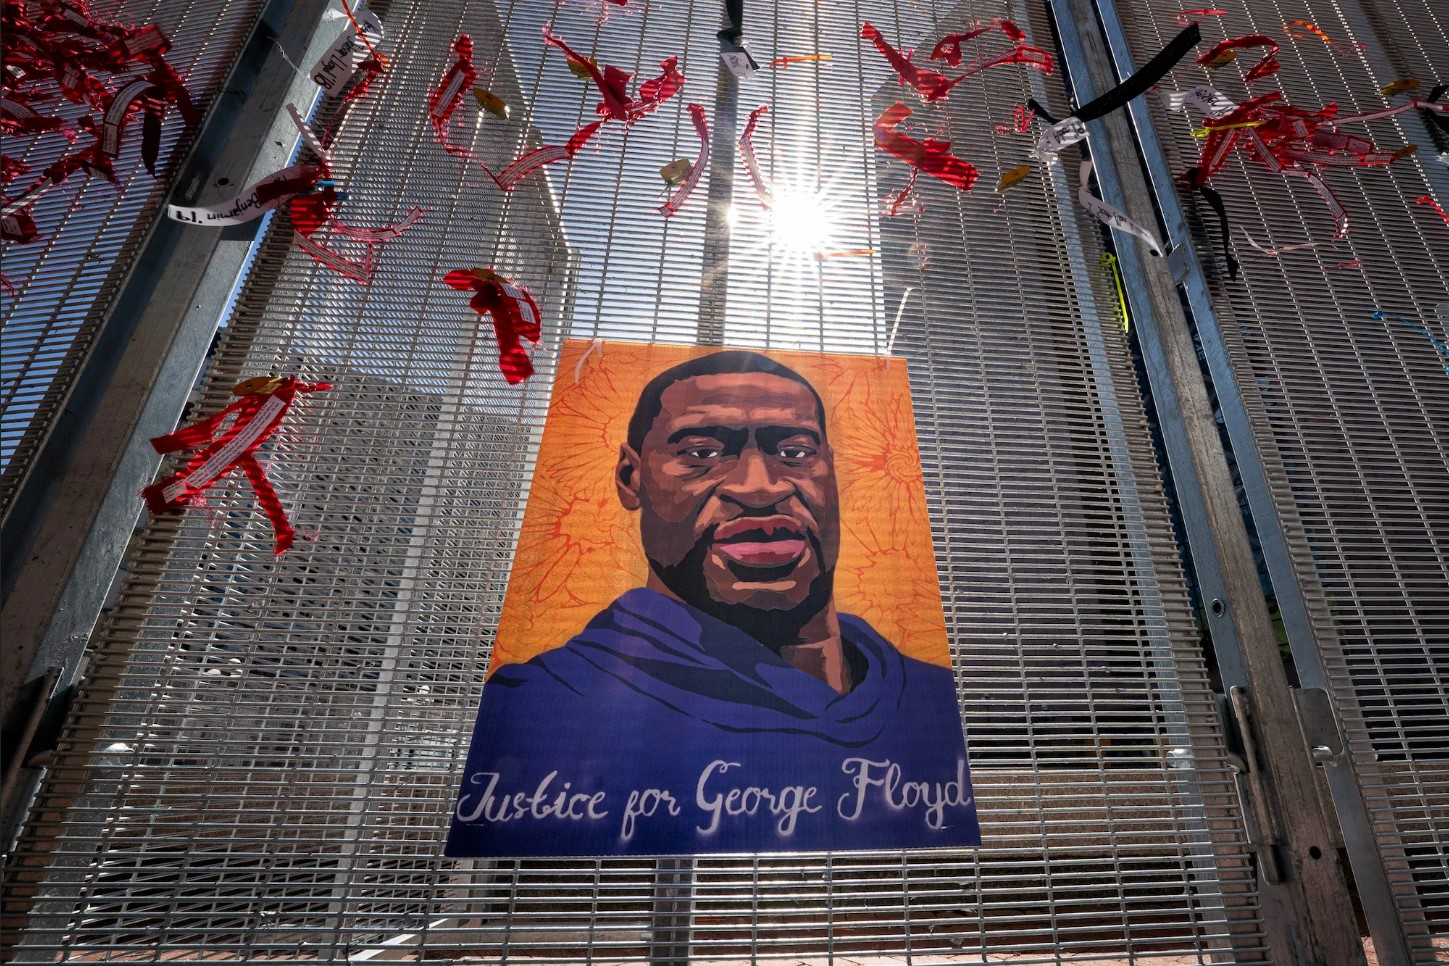 """""""Justice for George Floyd"""" in script lettering on a portrait of George Floyd mounted on a tall steel fence. With red fluttering decorations hovering around him."""